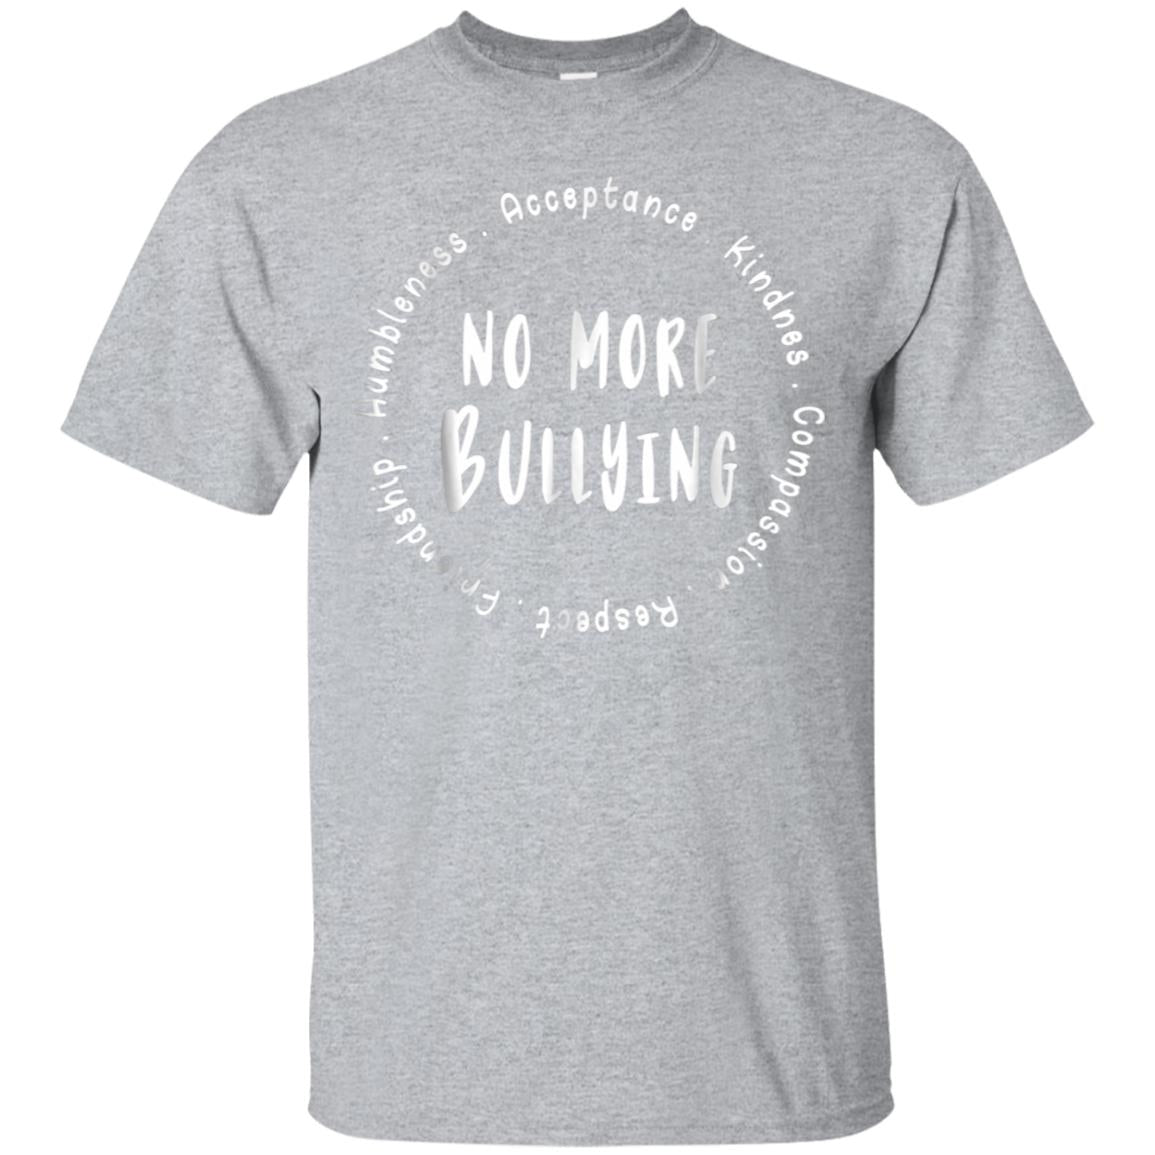 United For Kindness No More Bullying shirt stop Bullying tee 99promocode